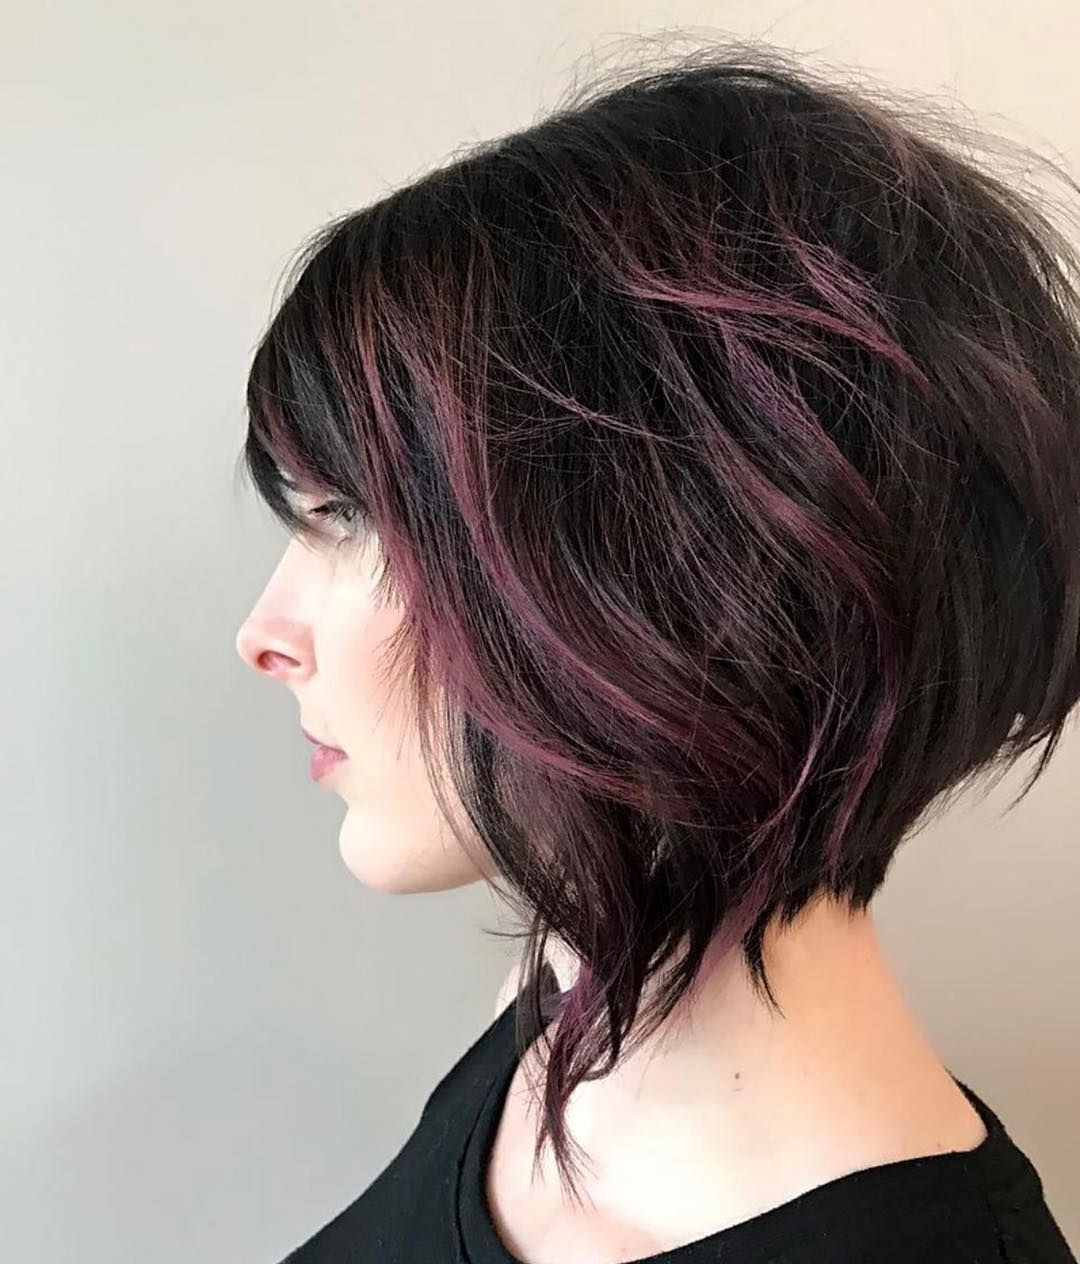 Favorite Marvelous Mauve Shaggy Bob Hairstyles With We Love This Short Angled Bob And Dark Purple Balayage (Gallery 2 of 20)